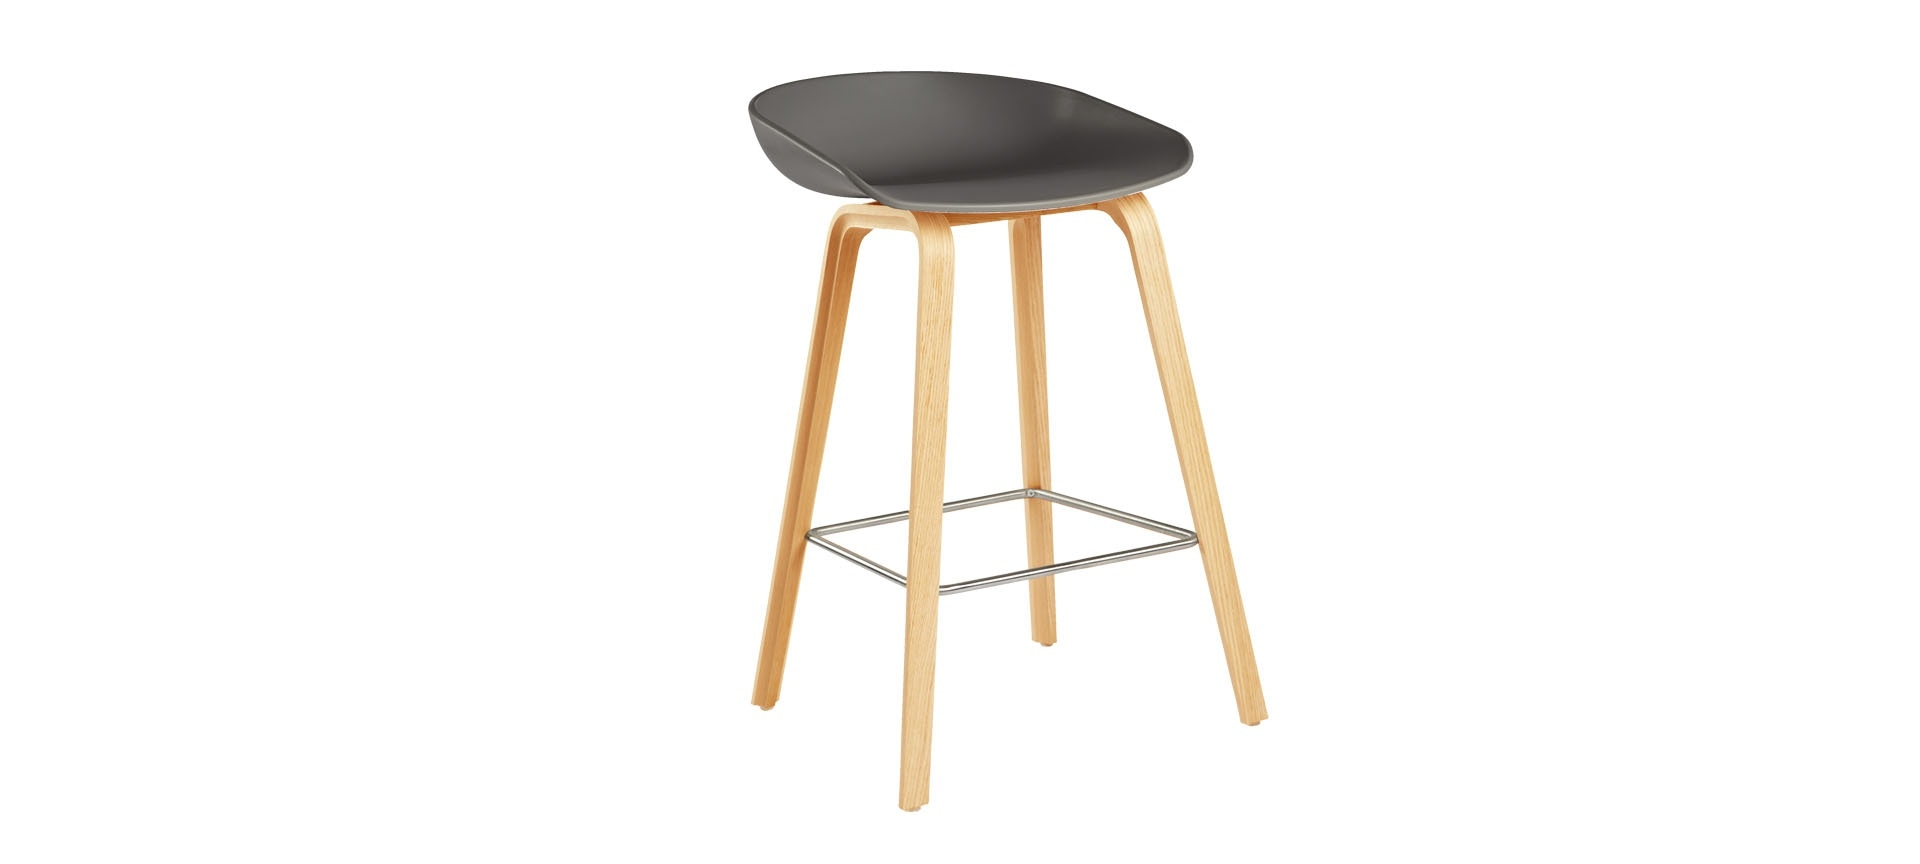 tabouret about a stool aas32 65cm hay hay blou paris tabouret hay about a stool. Black Bedroom Furniture Sets. Home Design Ideas